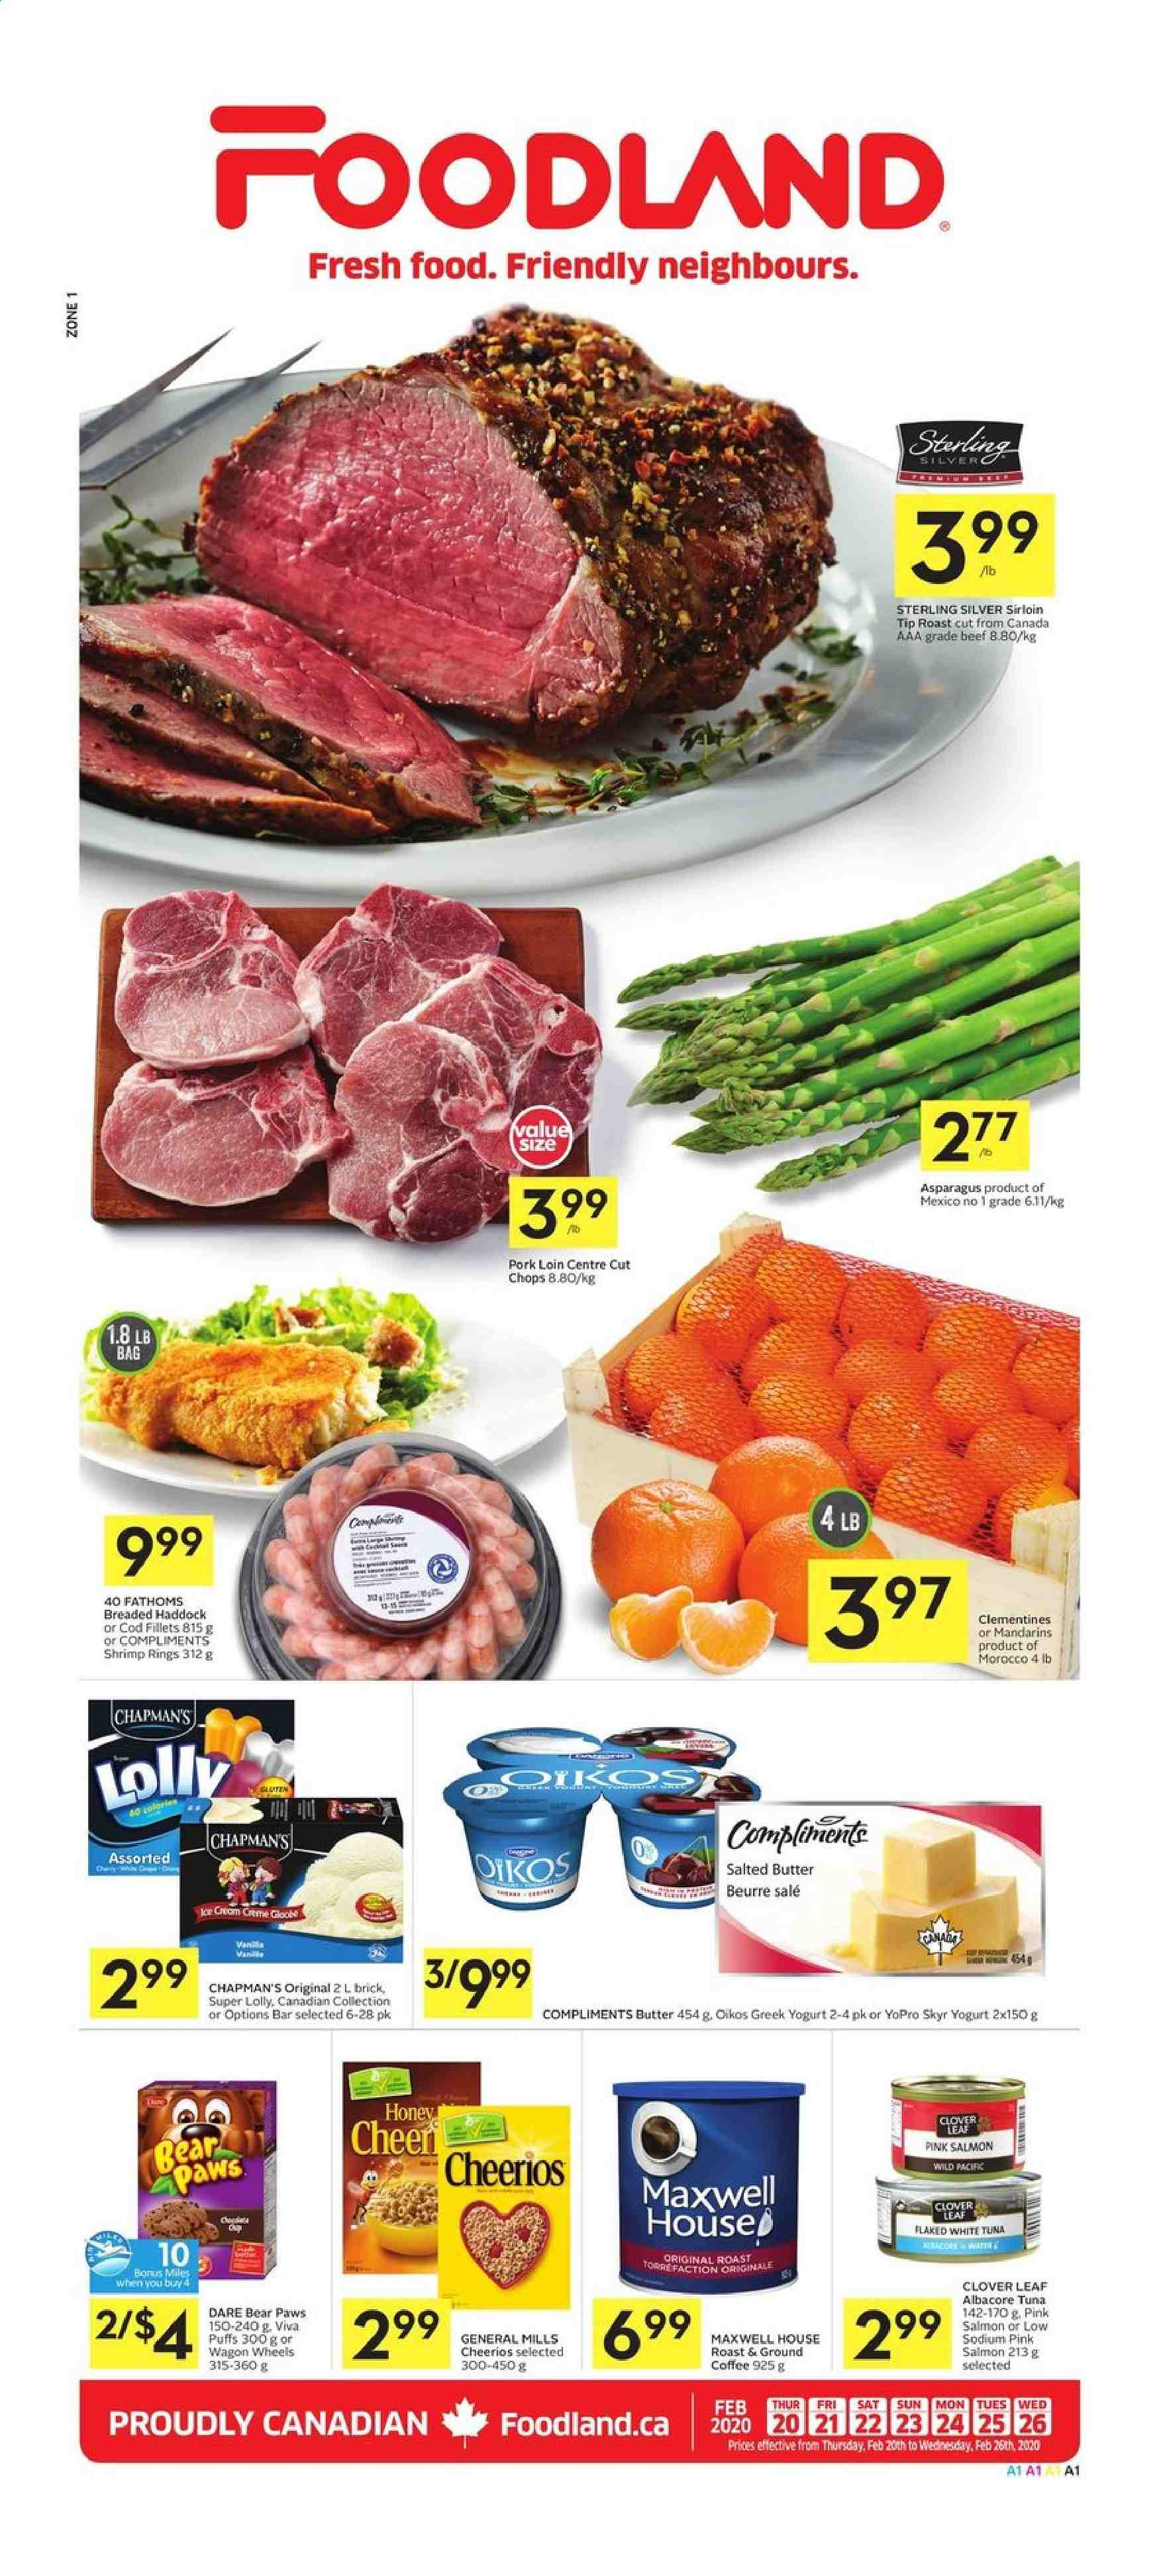 Foodland Flyer  - February 20, 2020 - February 26, 2020. Page 1.